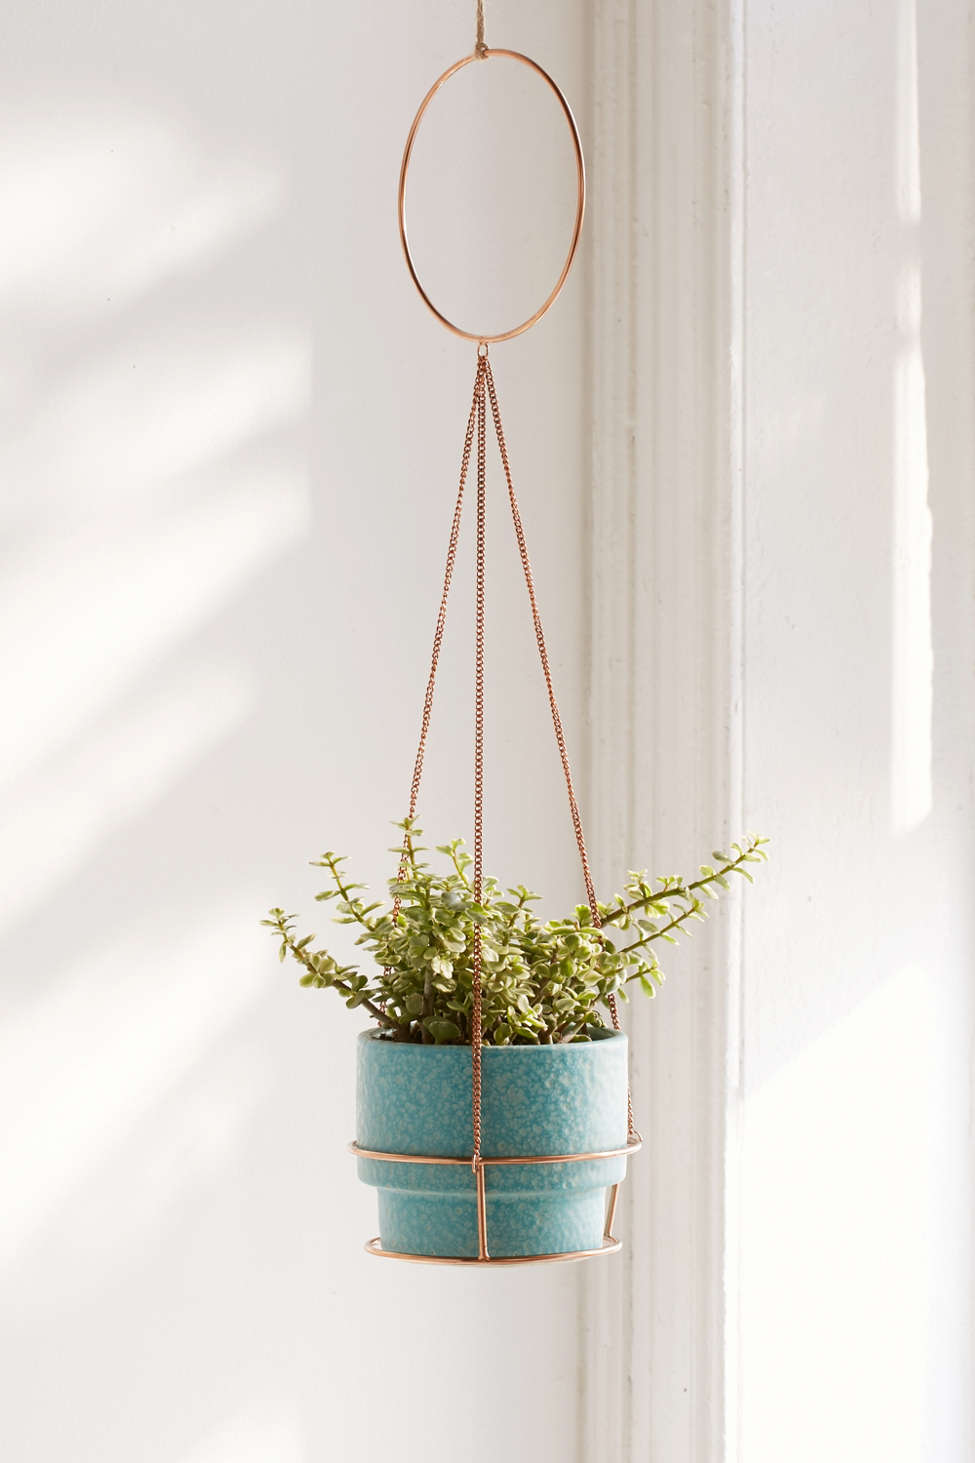 Slide View: 1: Metal Circle Hanging Planter